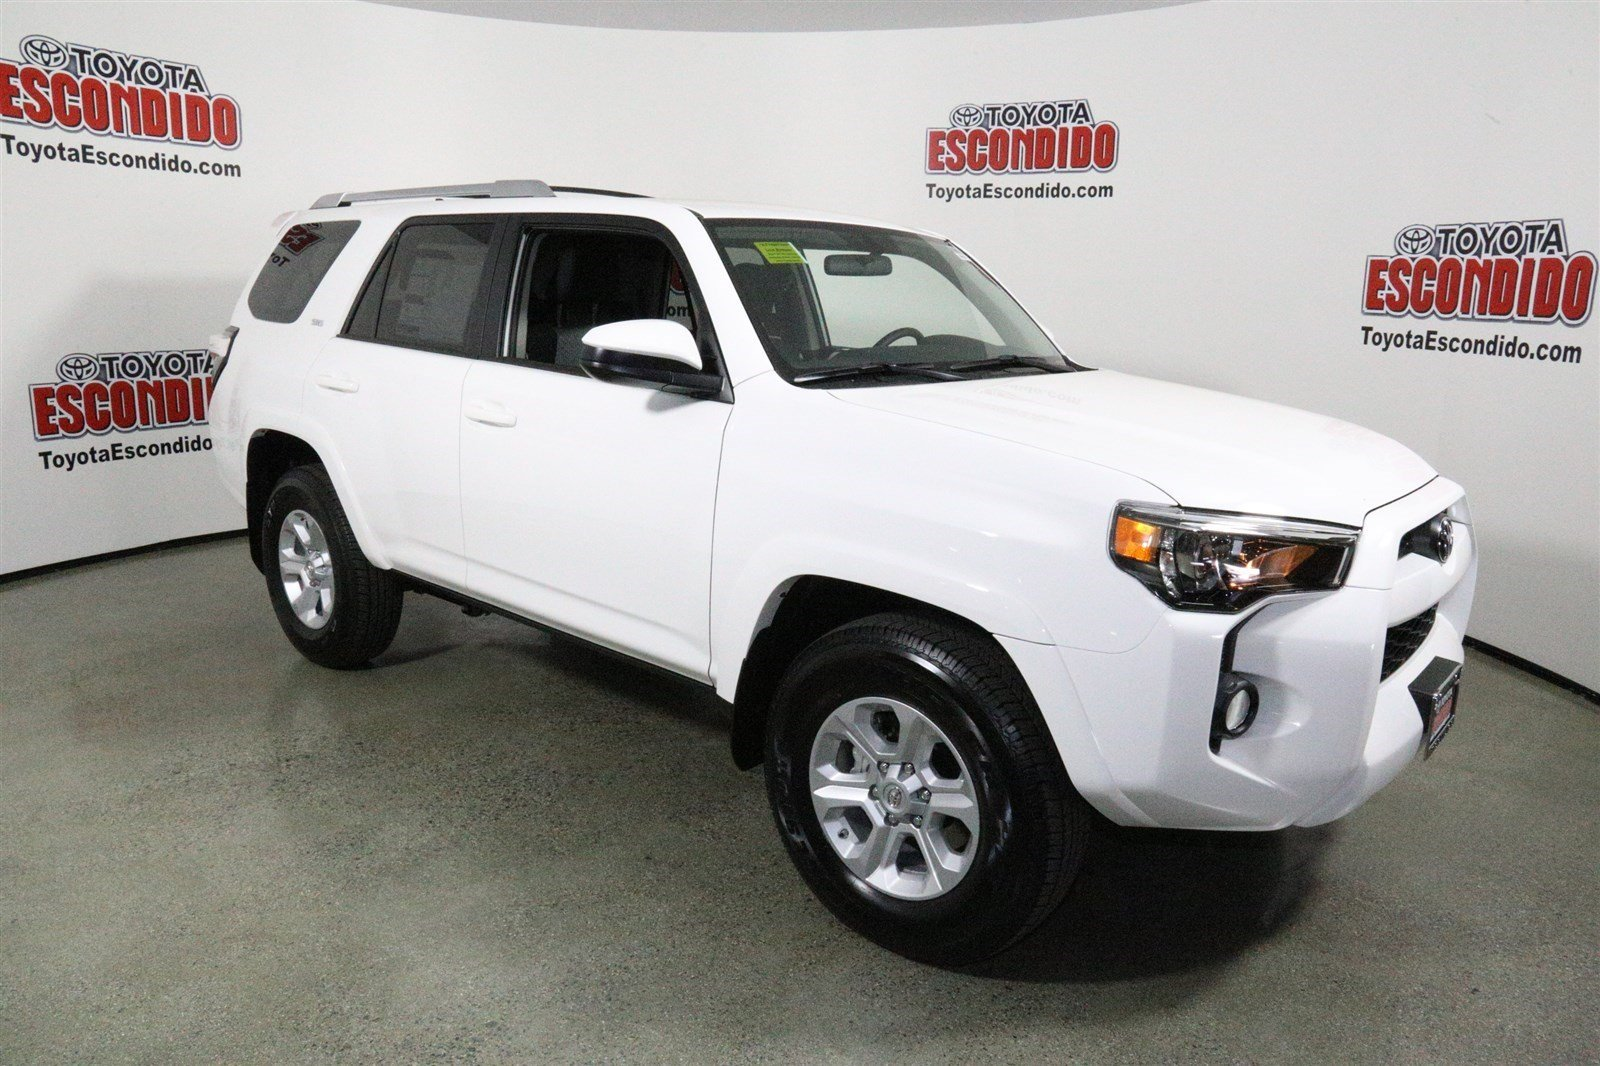 new 2016 toyota 4runner sr5 sport utility in escondido 1014442 toyota of escondido. Black Bedroom Furniture Sets. Home Design Ideas